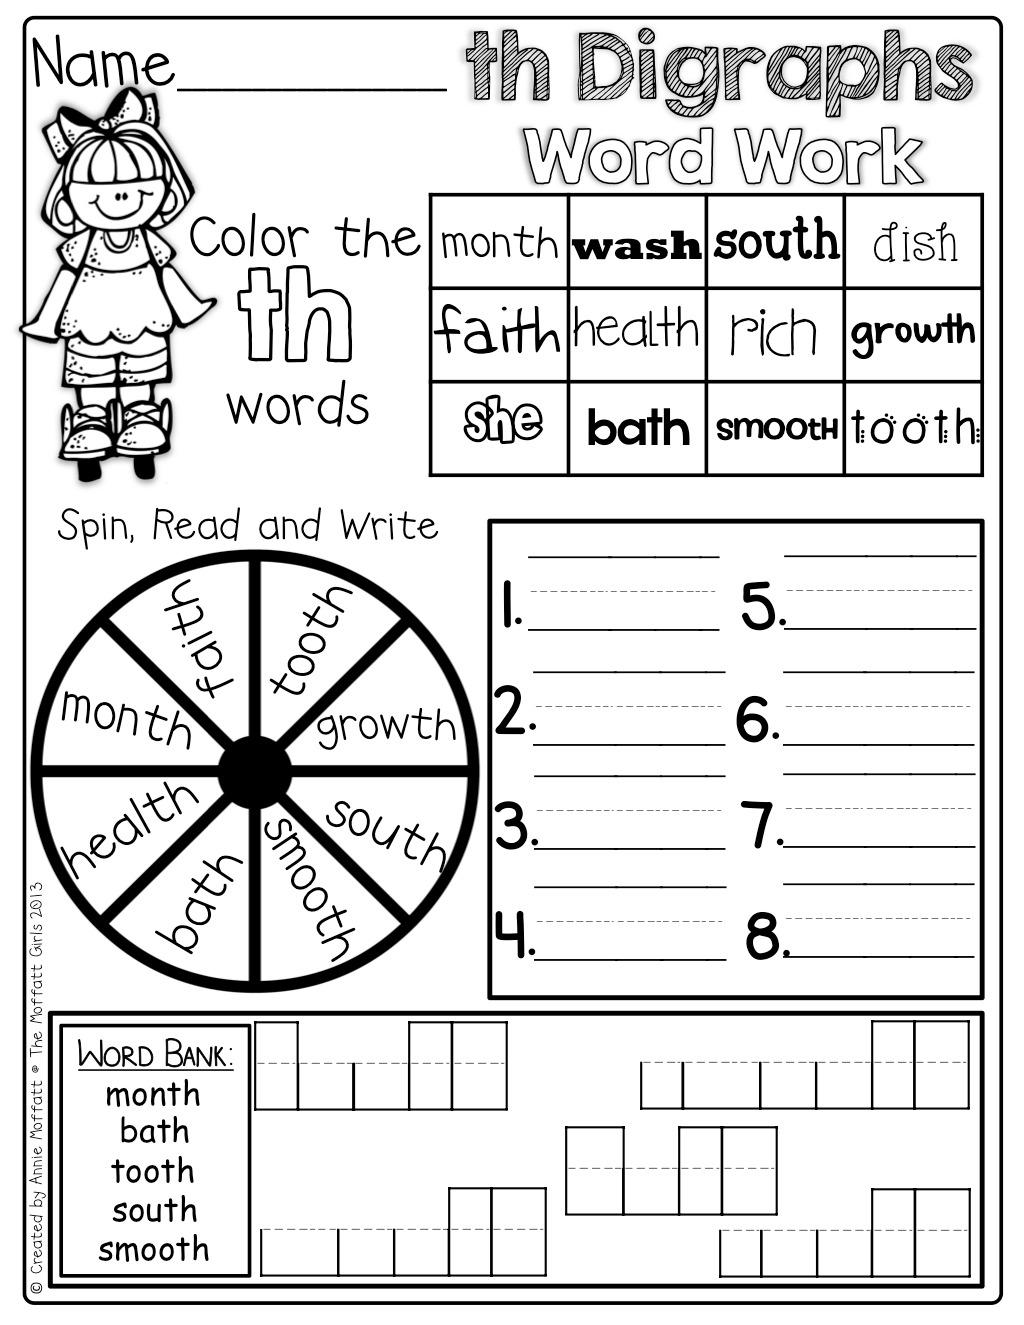 Digraphs Word Work Color The Digraph Words Spin And Write A Digraph And Box Up The Digraphs